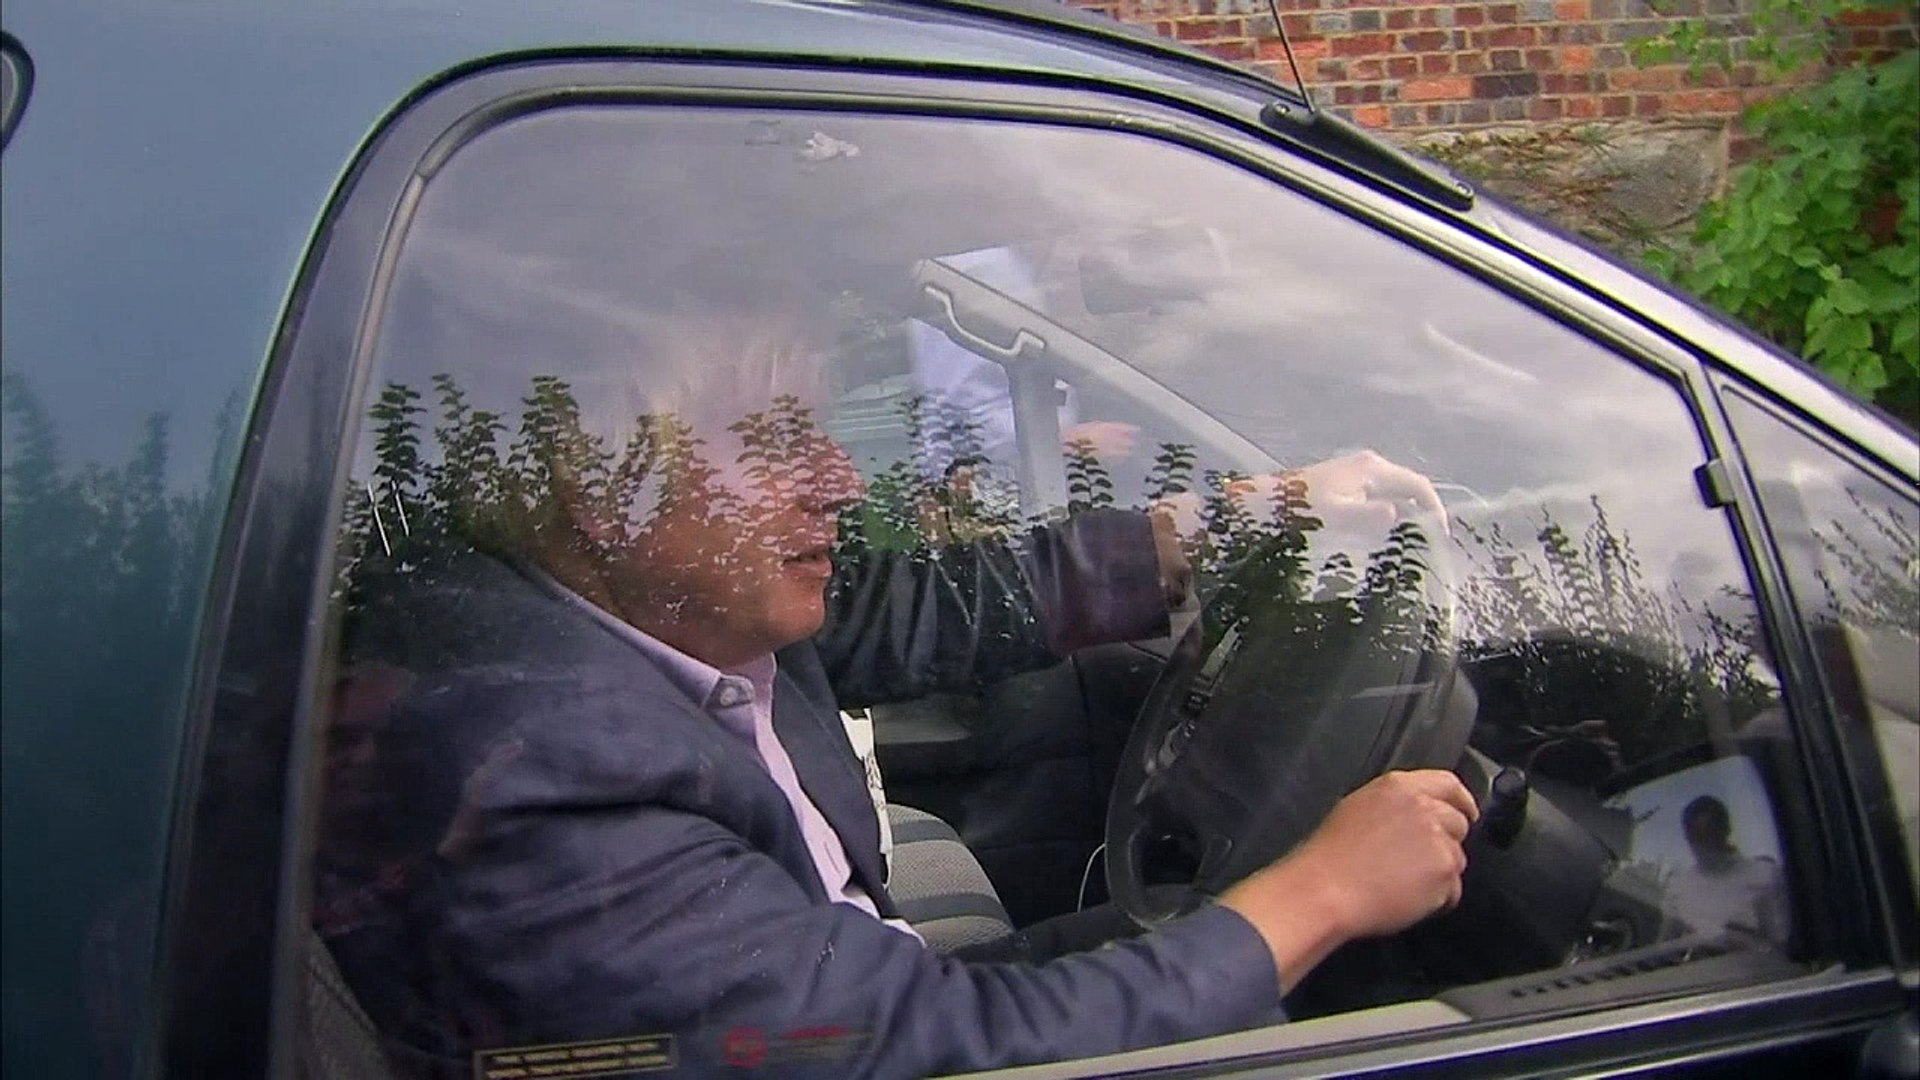 Boris Johnson blocked from getting into house by journalists